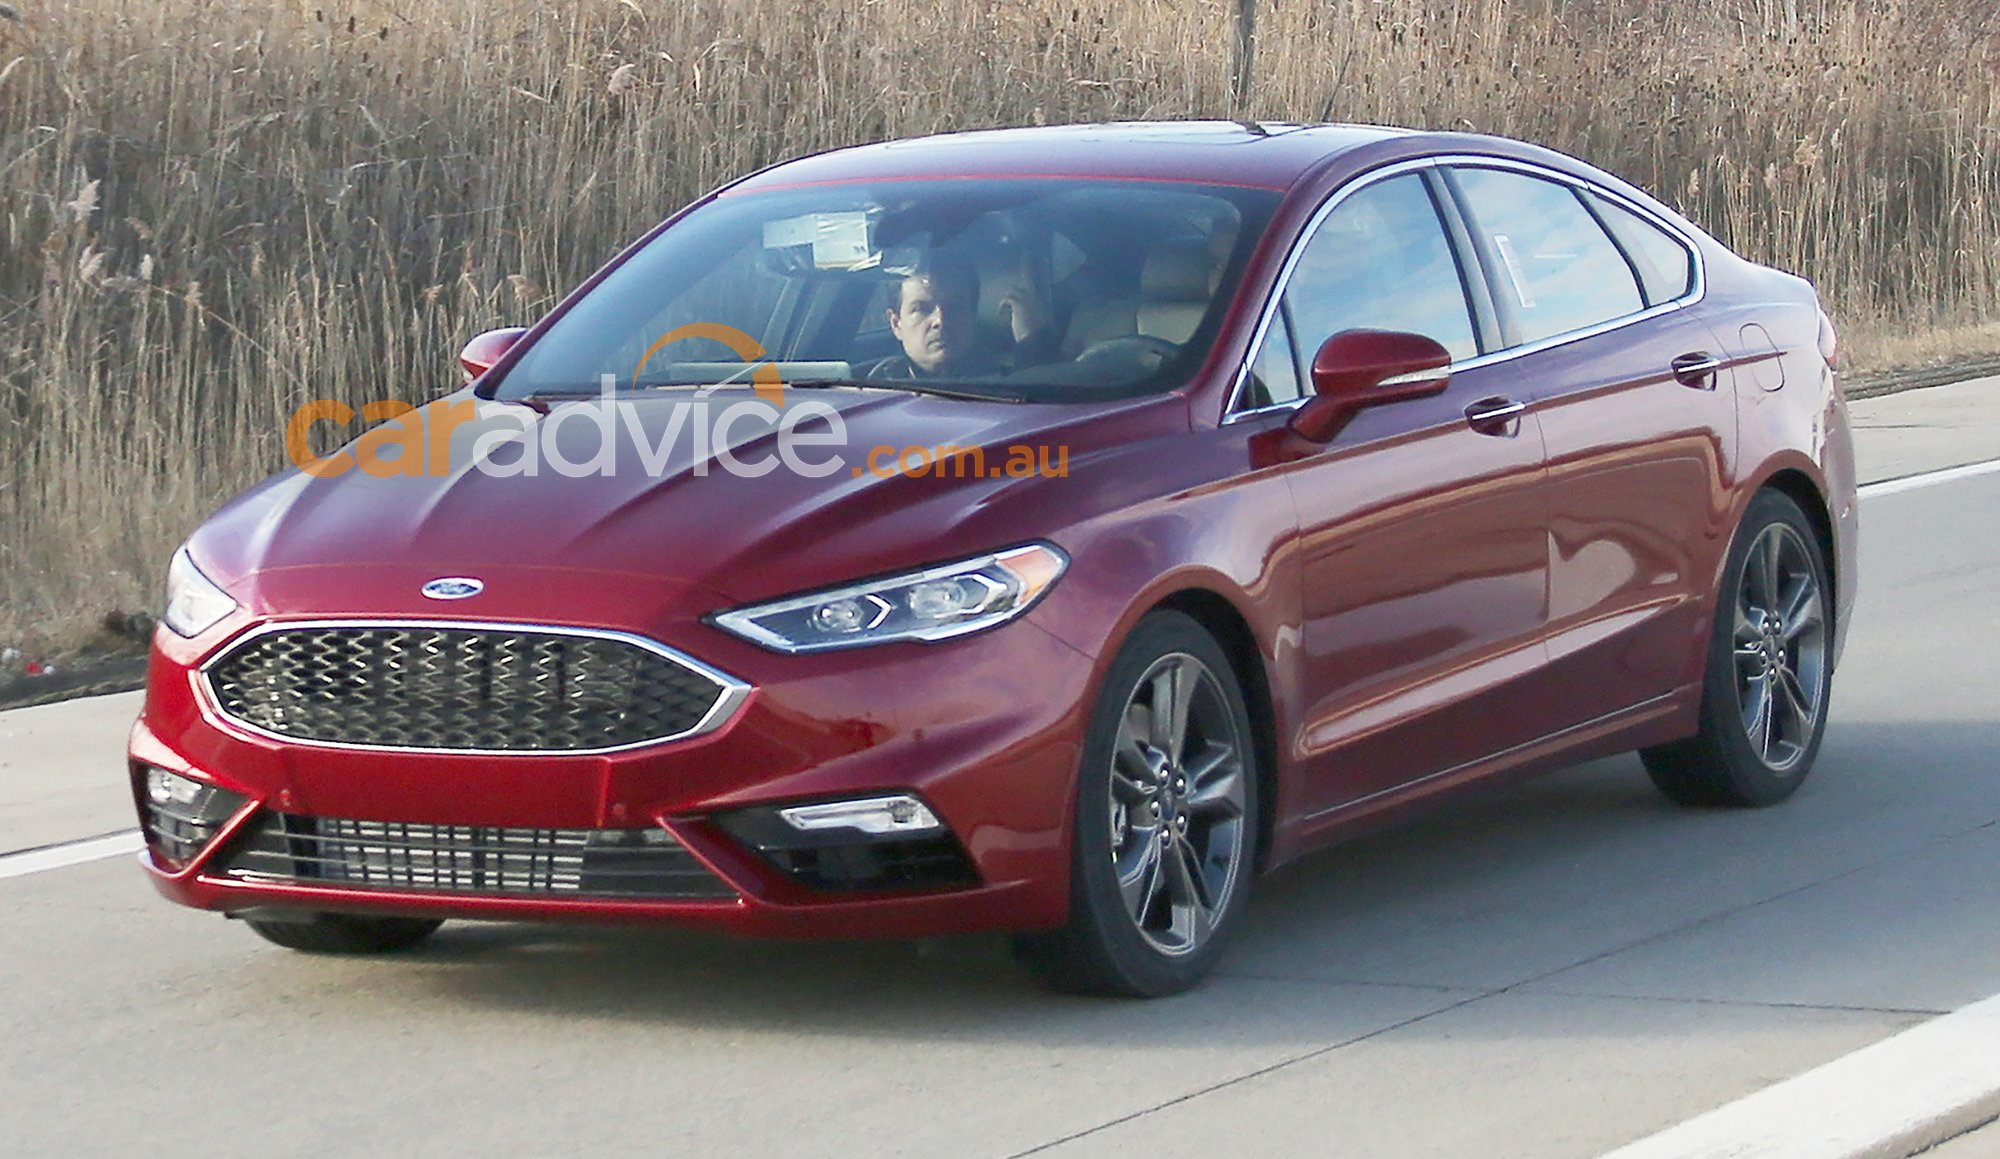 2017 ford mondeo sport spied without disguise turbo v6 expected for detroit show photos 1 of 5. Black Bedroom Furniture Sets. Home Design Ideas